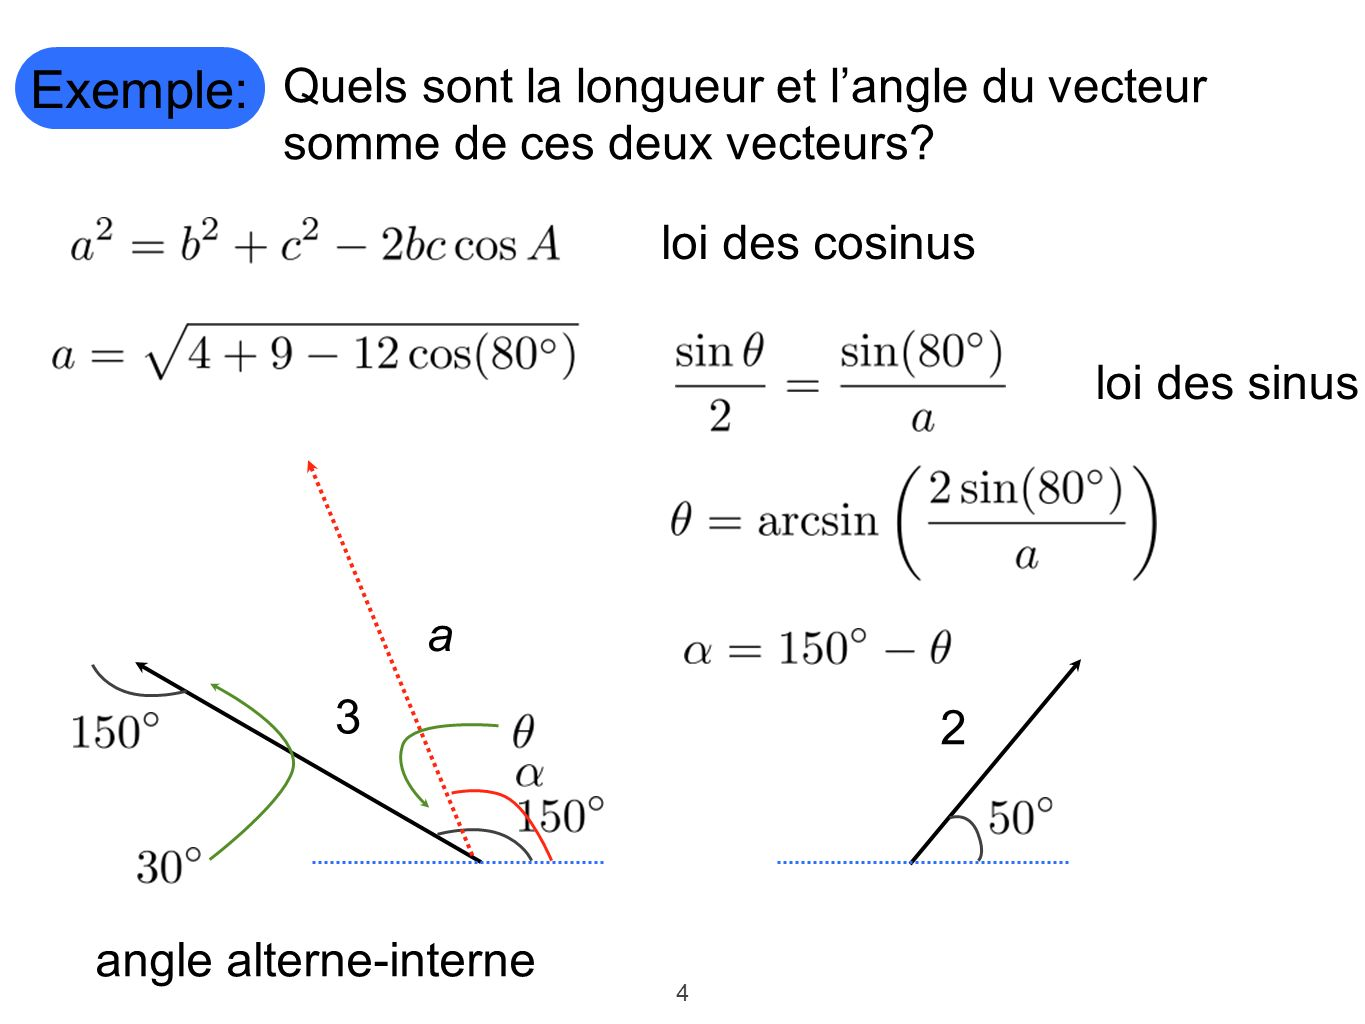 angle alterne-interne